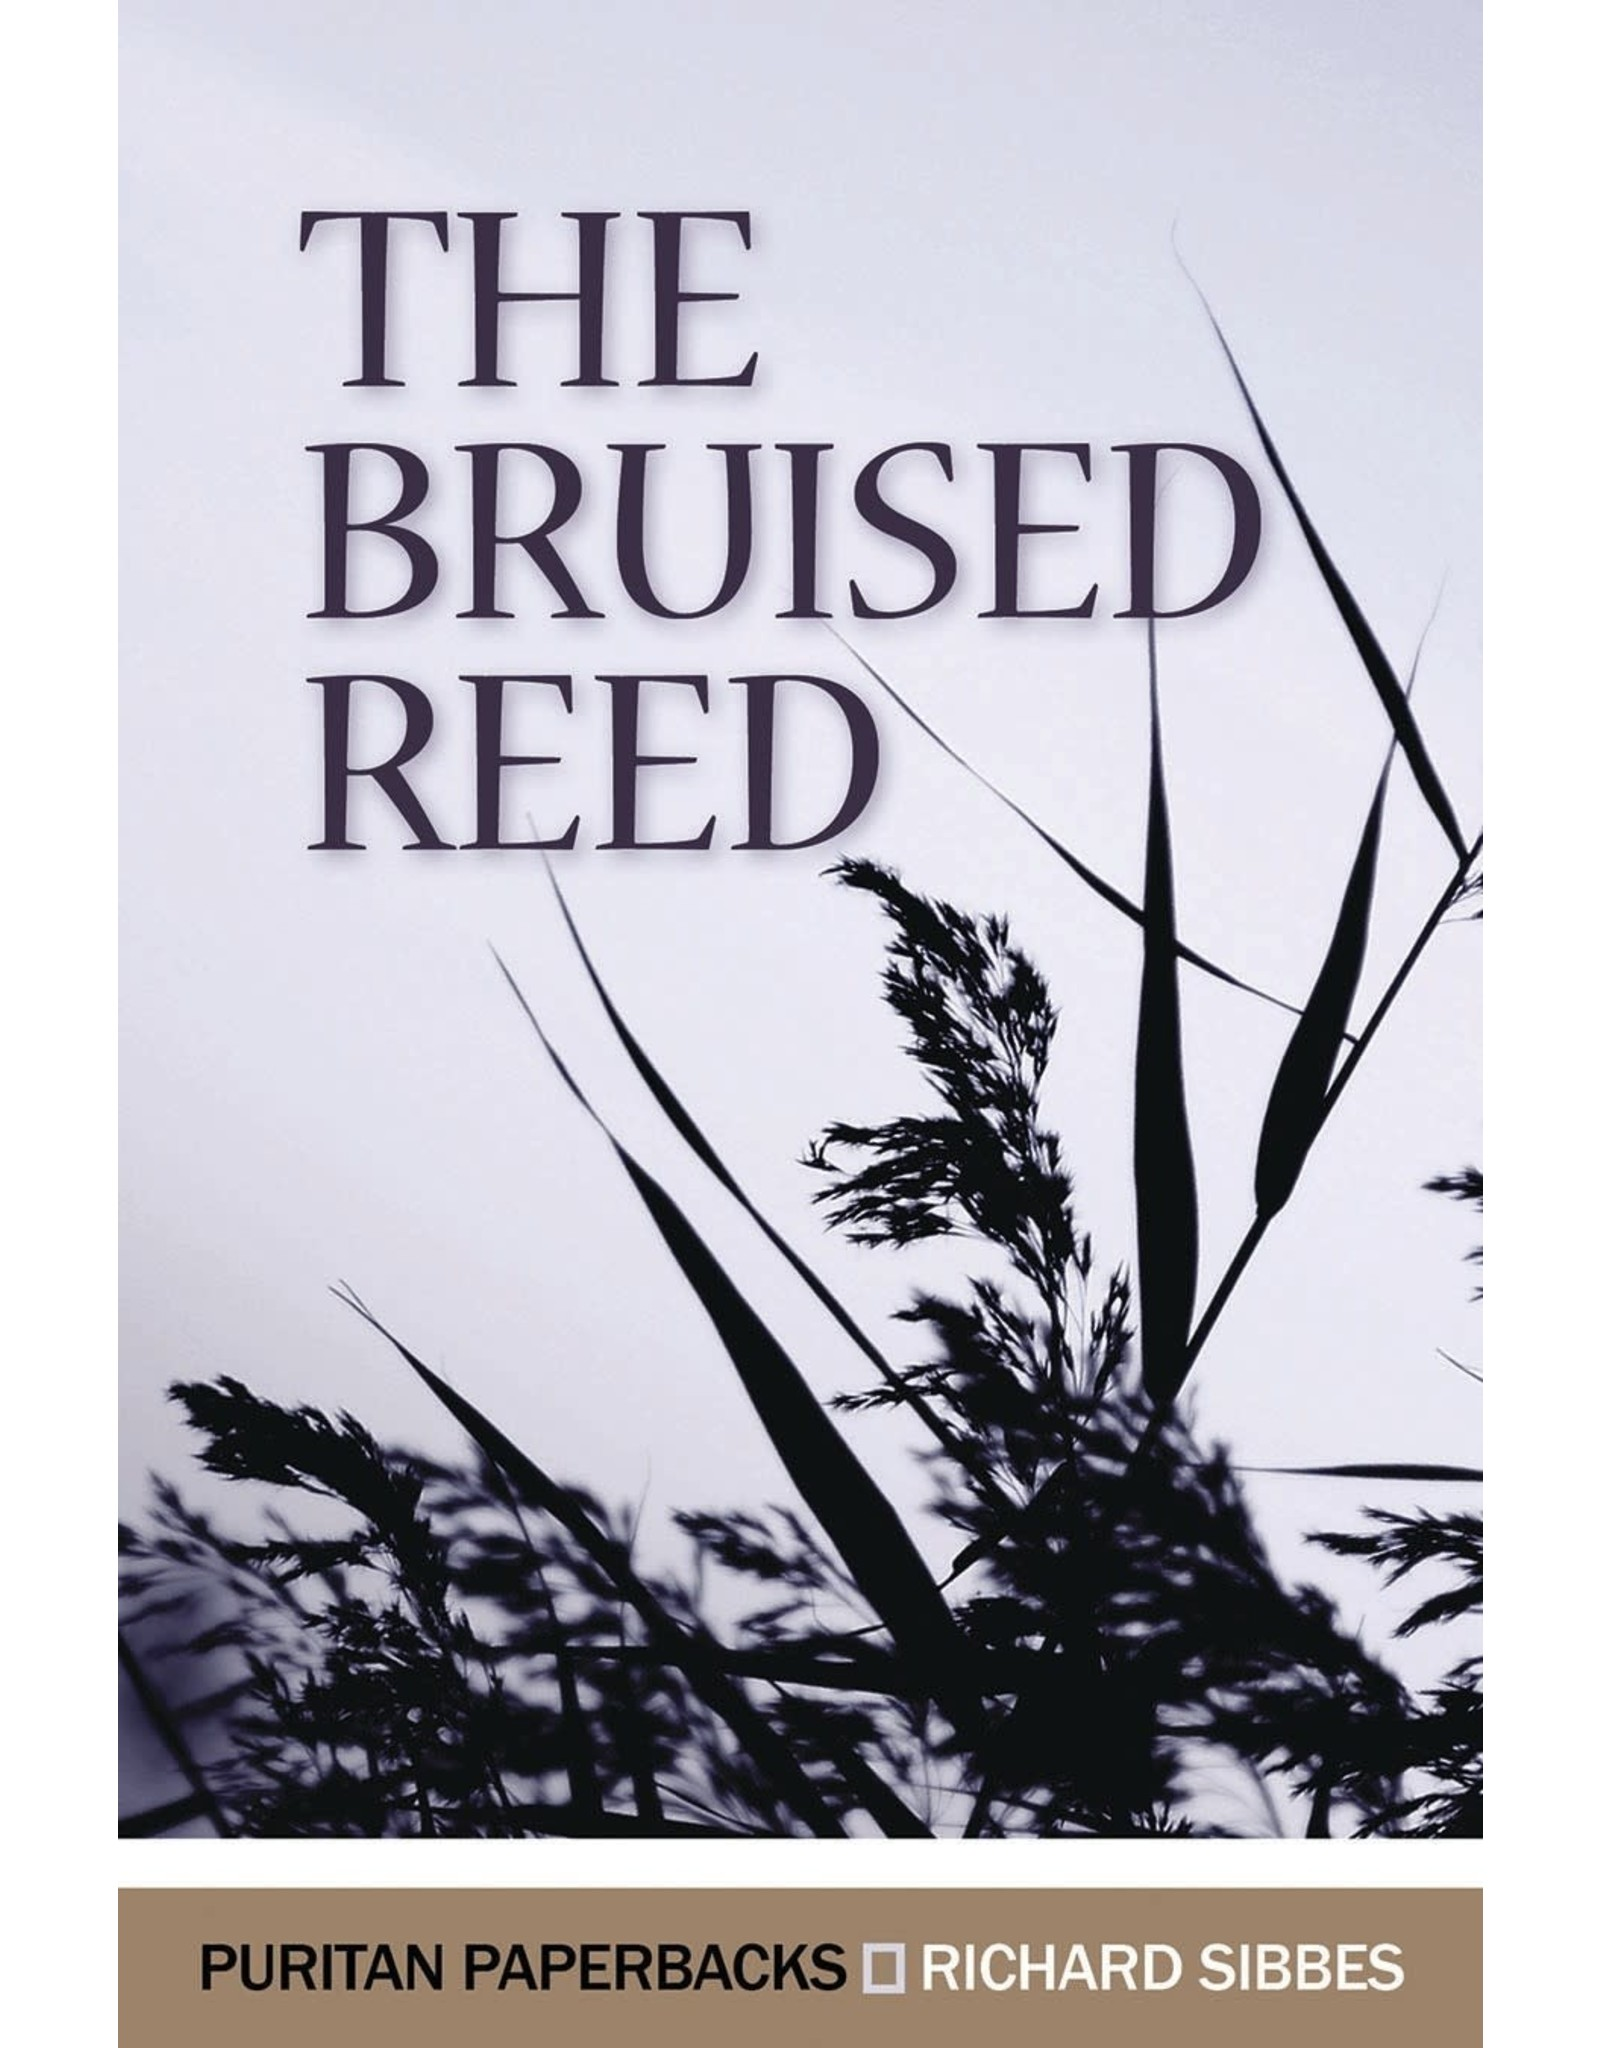 Sibbes The Bruised Reed(Puritan Paperbacks)